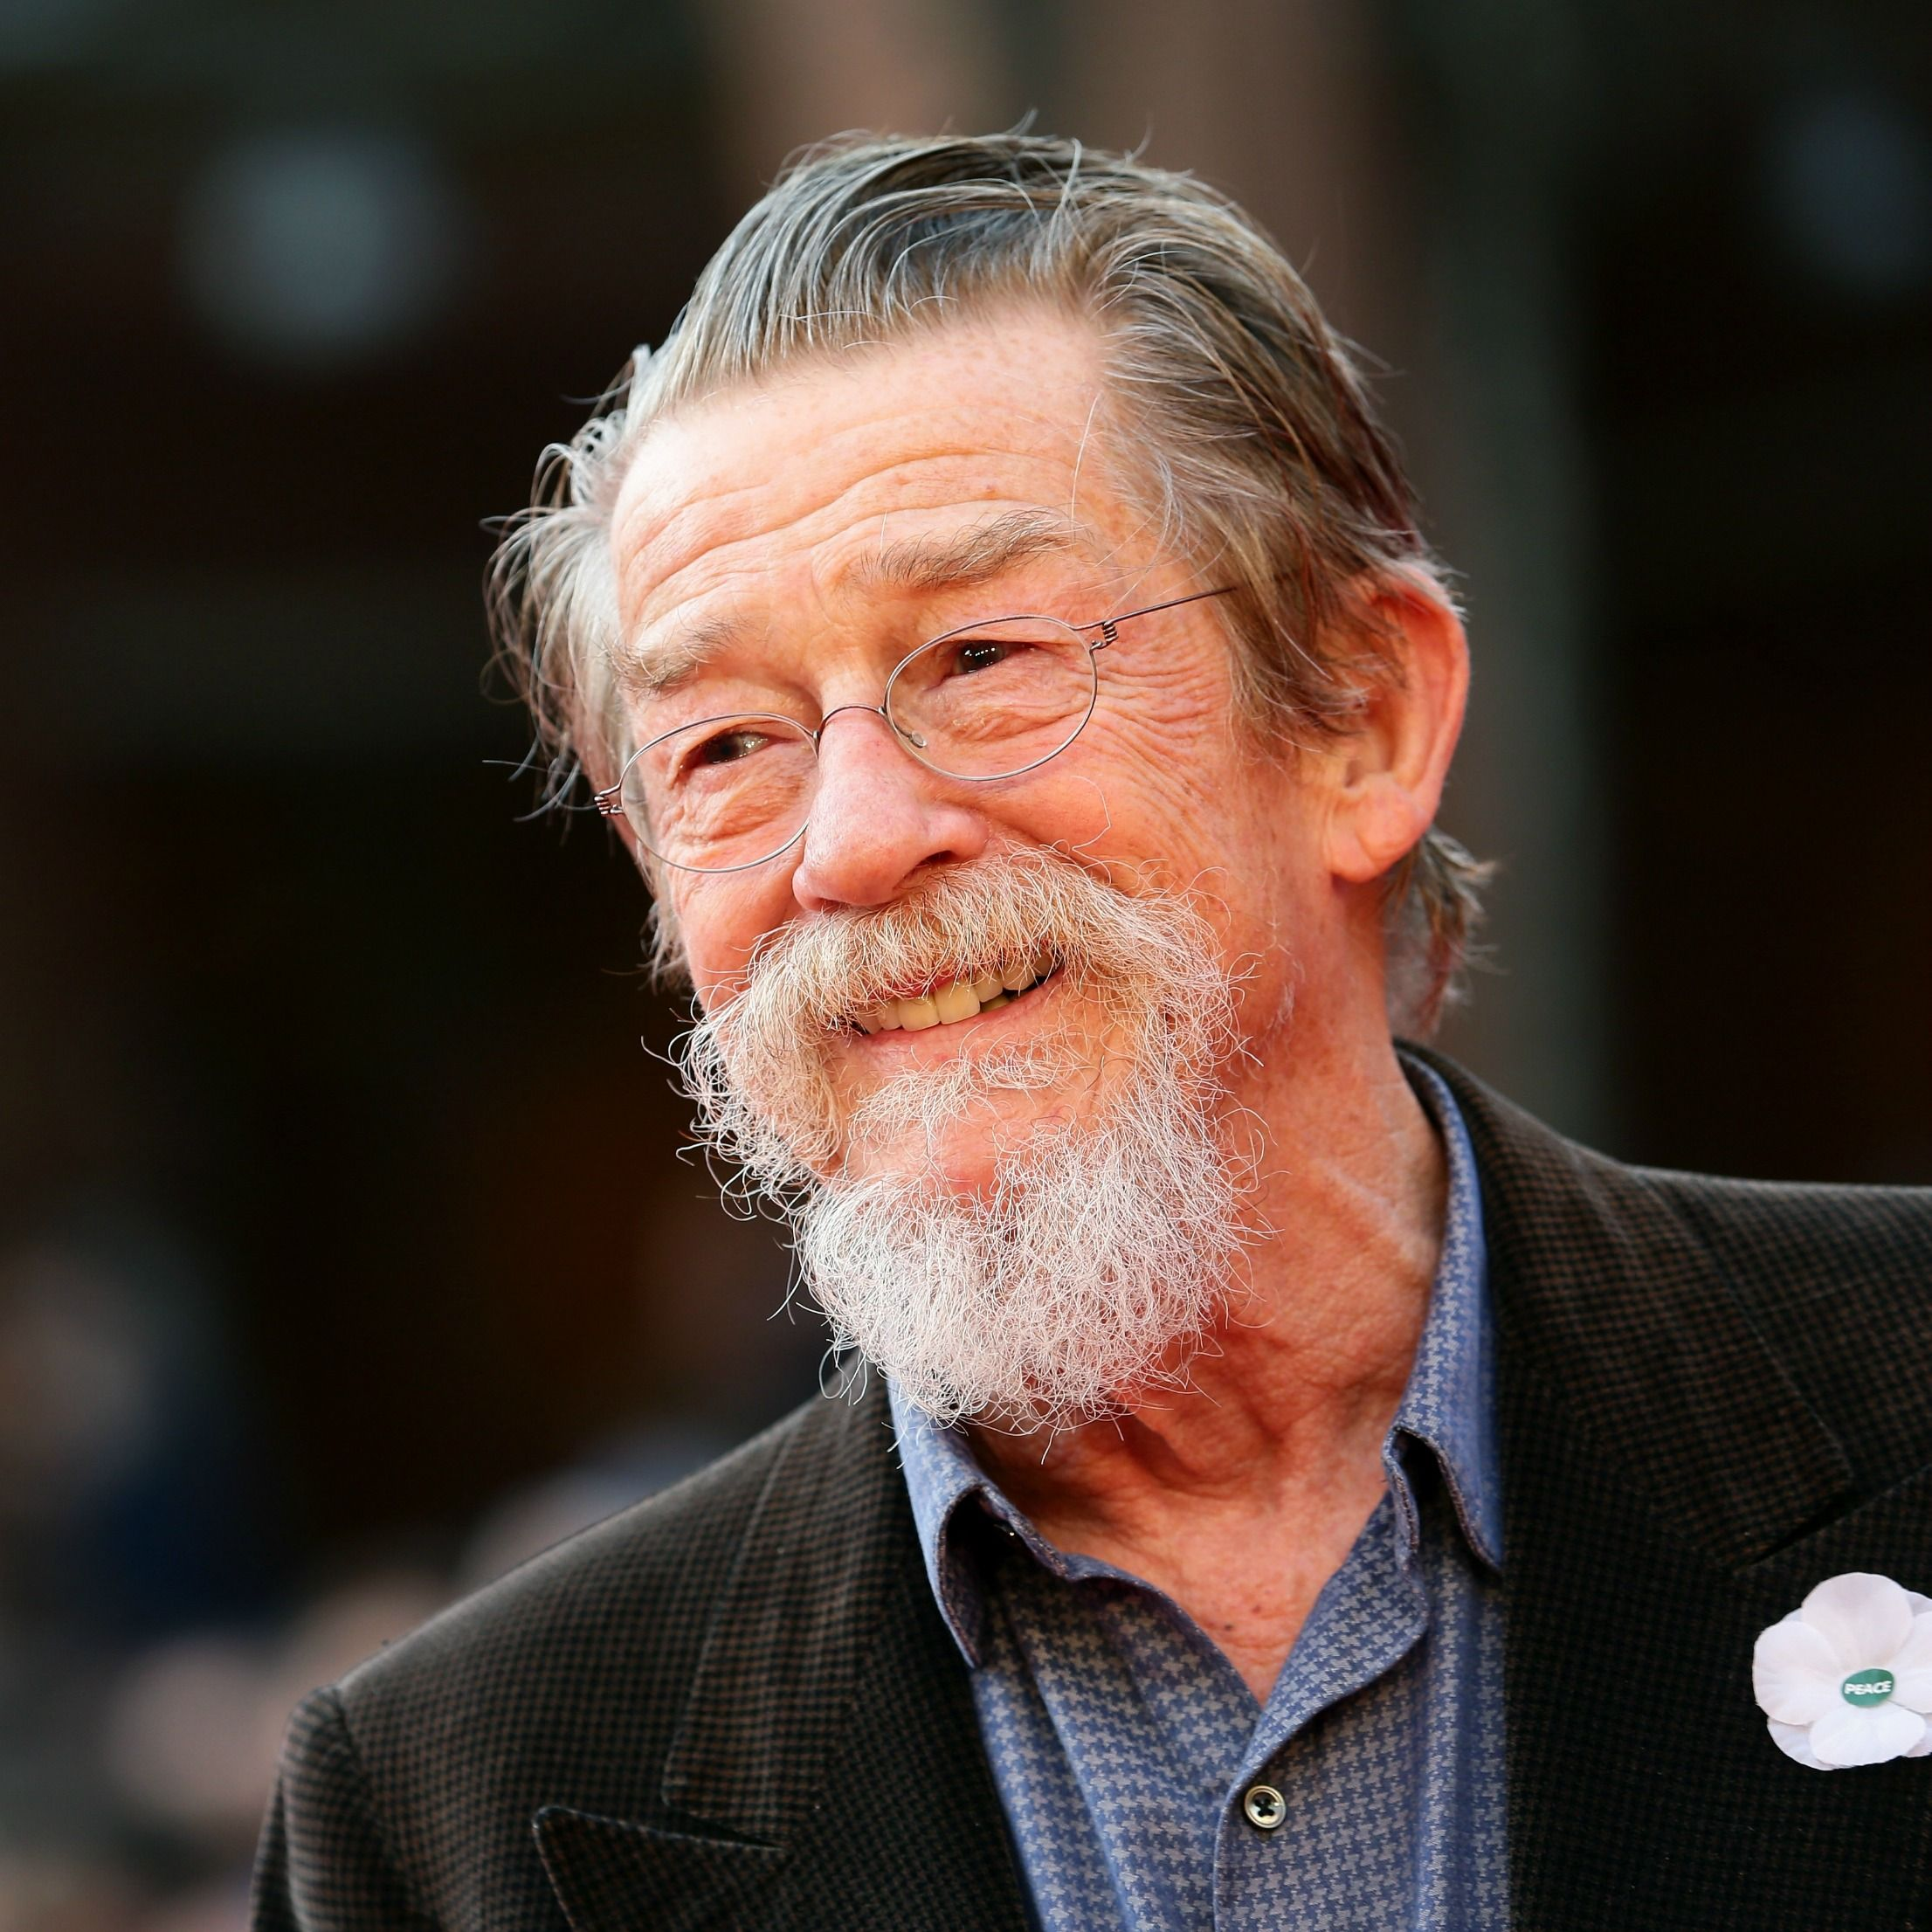 Actor John Hurt died at the age of 77 years 01/28/2017 47